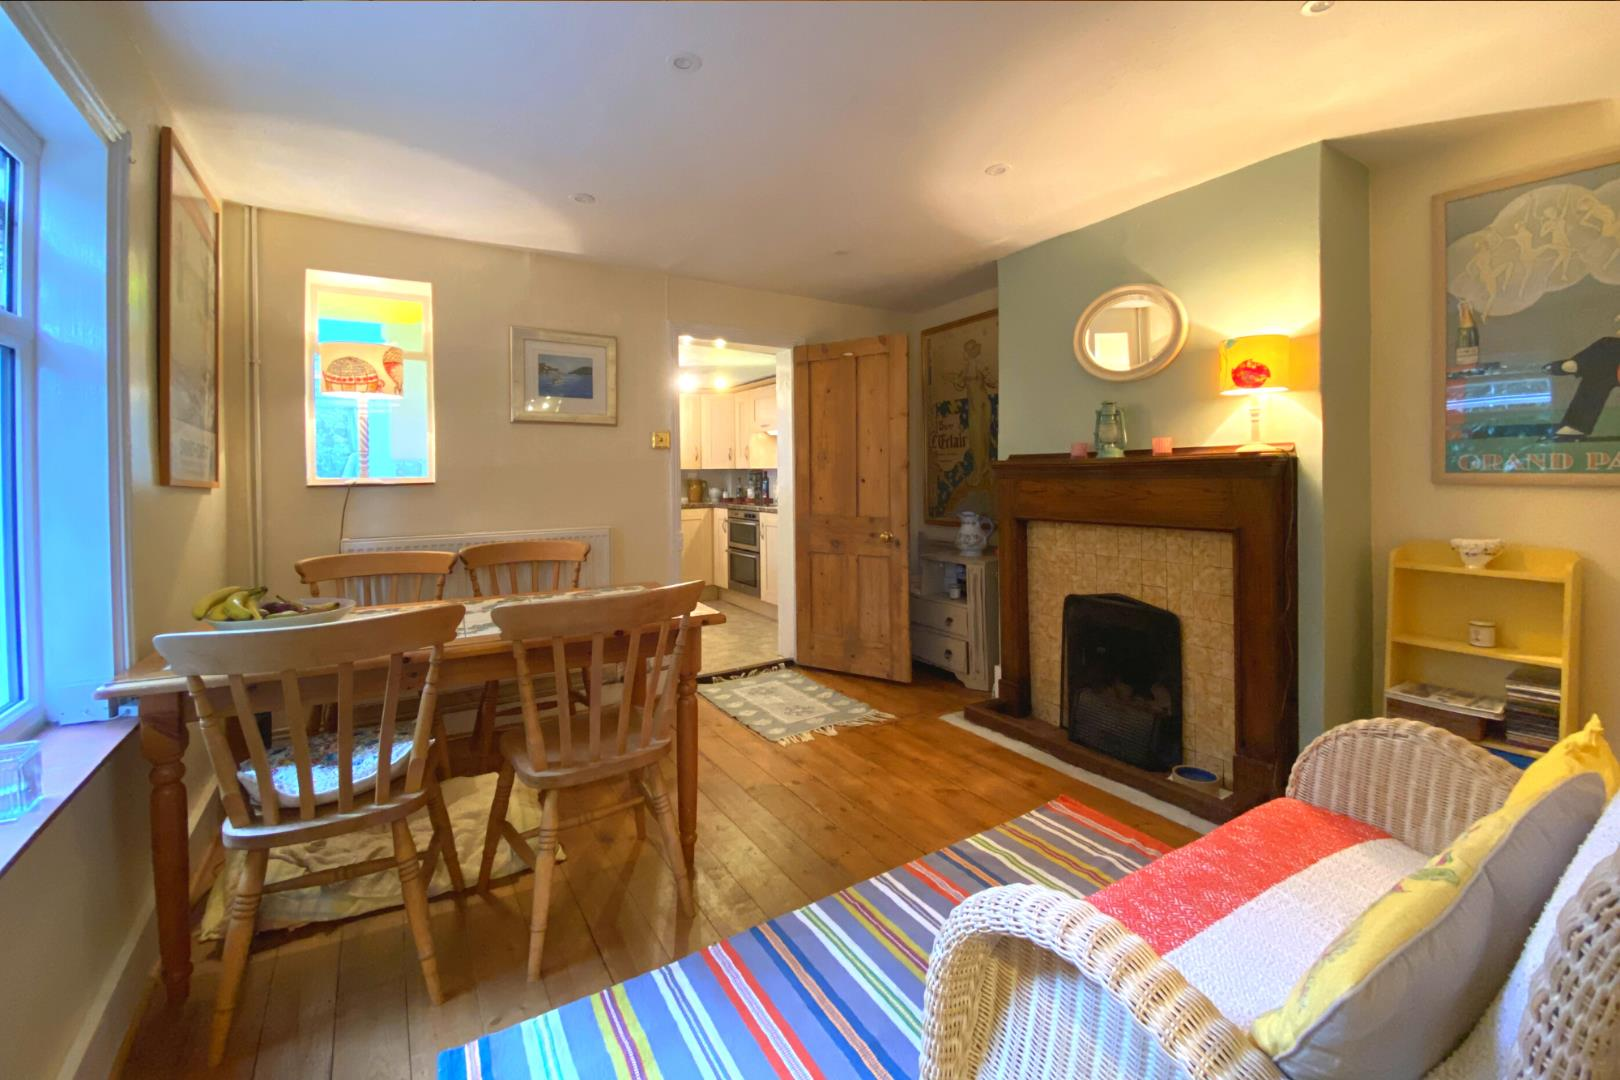 2 bed house for sale in Wonersh 3